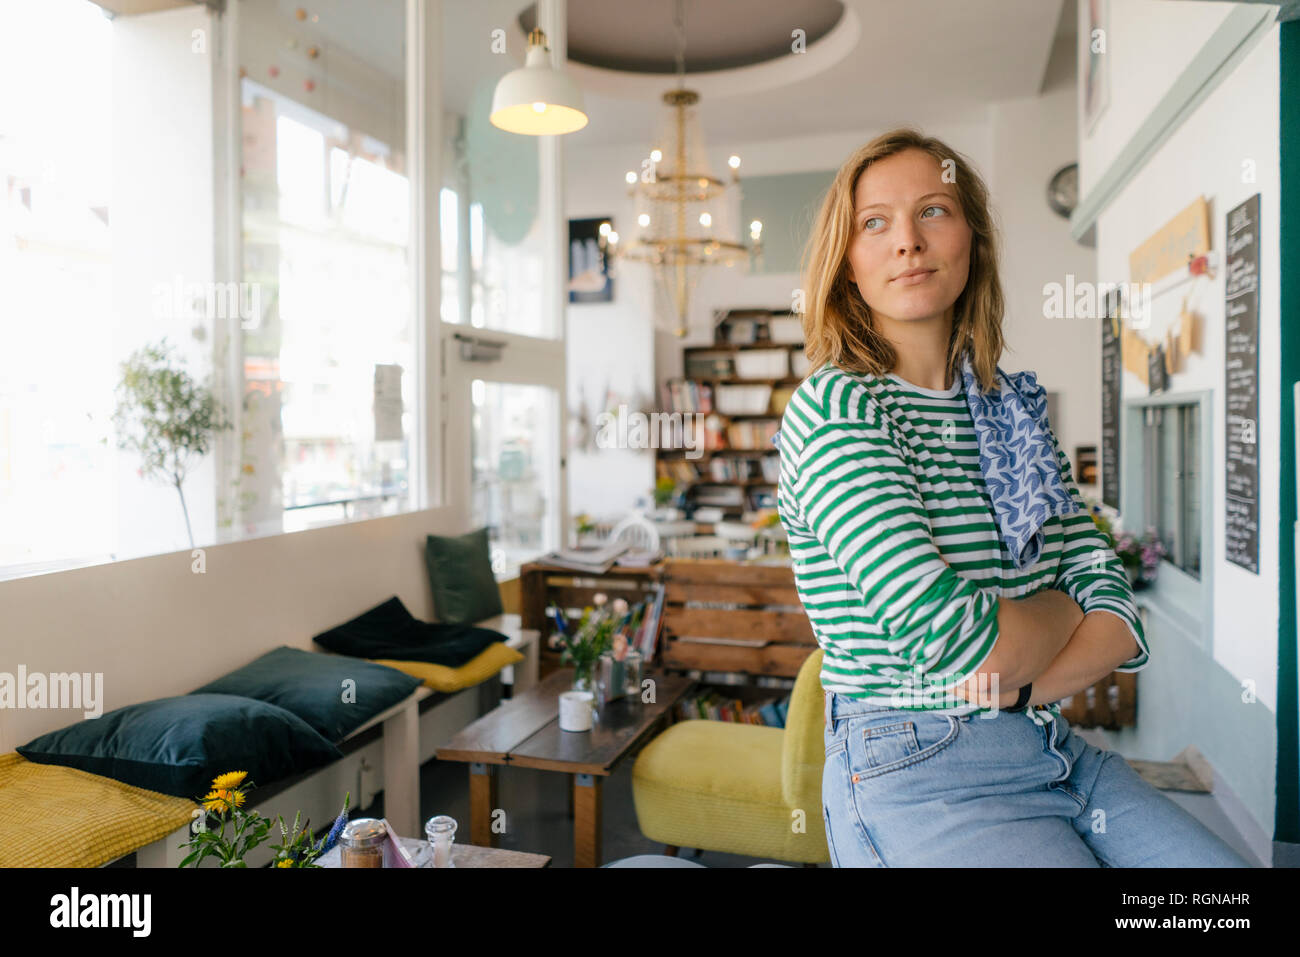 Young woman in a cafe looking sideways - Stock Image